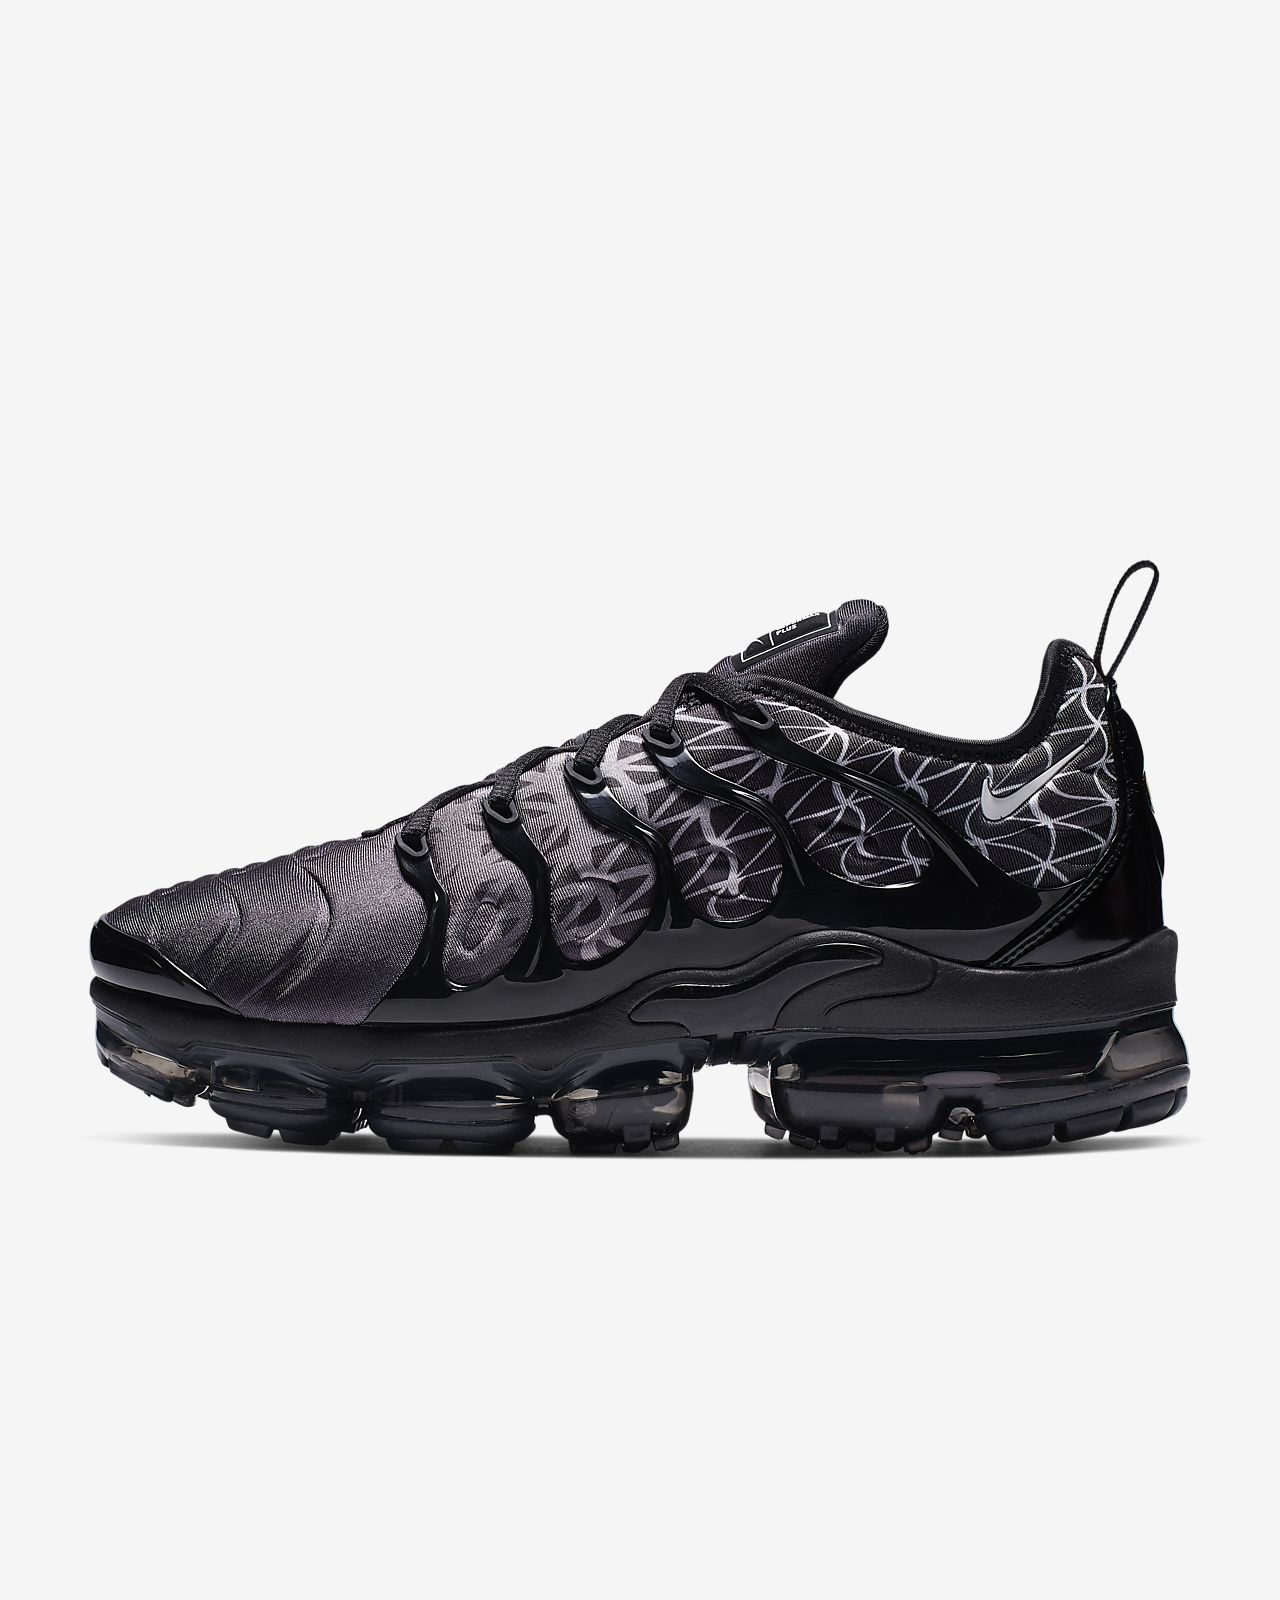 sneakers for cheap c1ebc 7d3d7 ... Chaussure Nike Air VaporMax Plus pour Homme